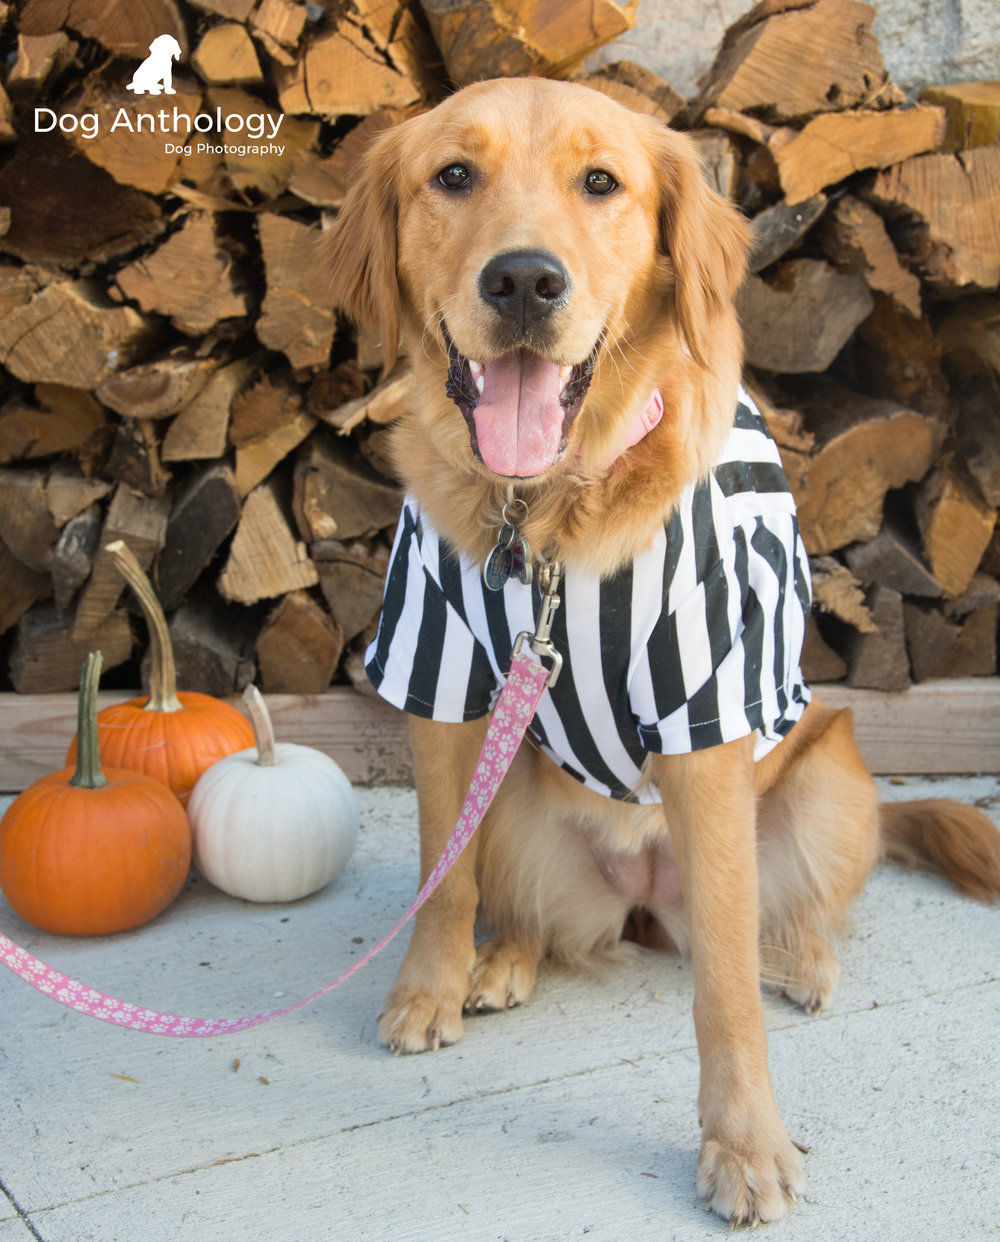 Can this dog referee my kids' next T-Ball game?